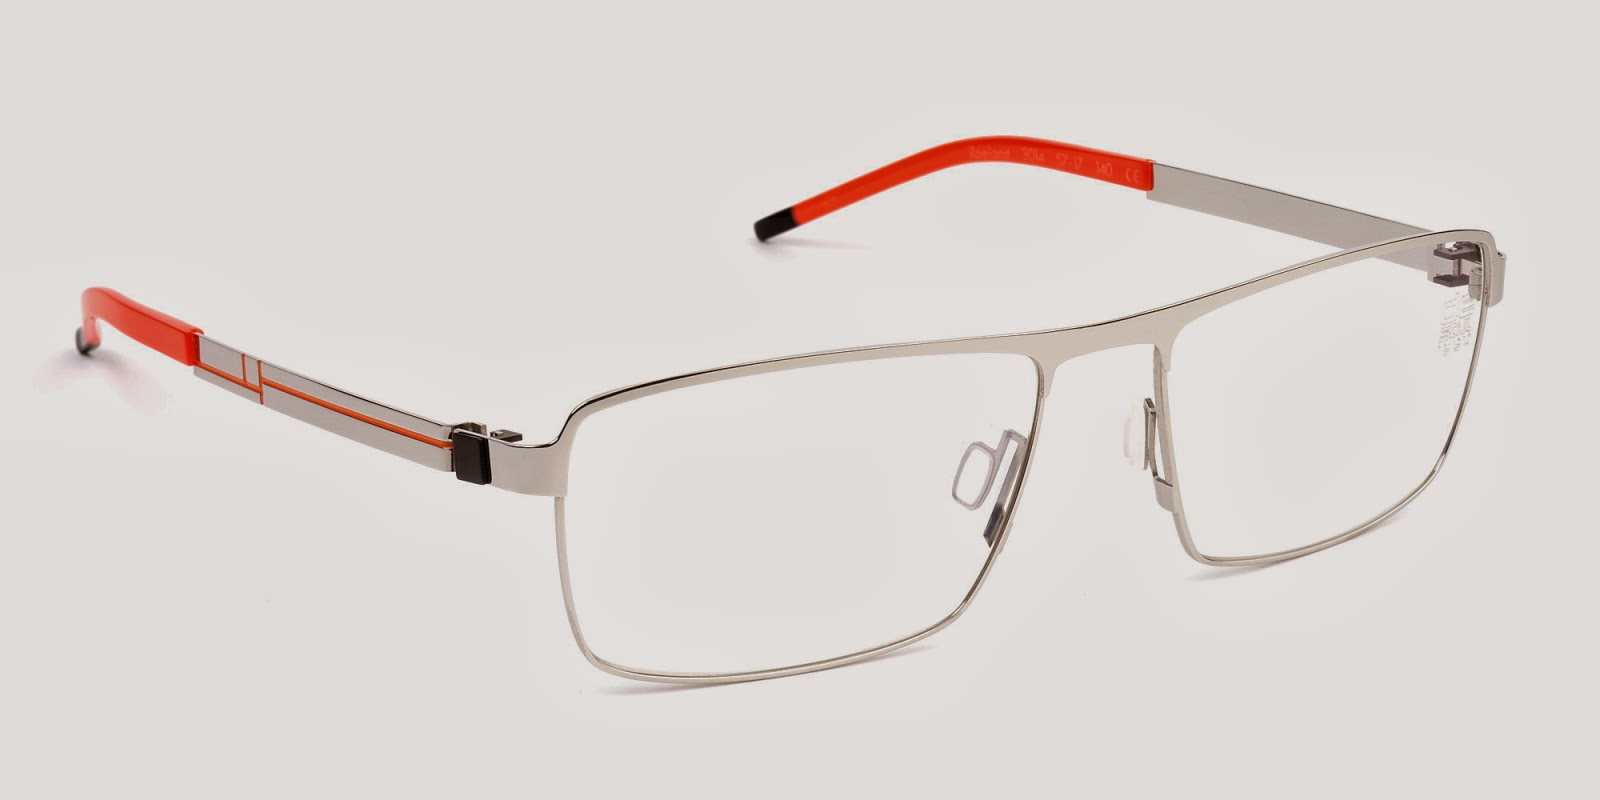 Glasses Frames Netherlands : pessimism of the intellect, optimism of the will: Walter ...